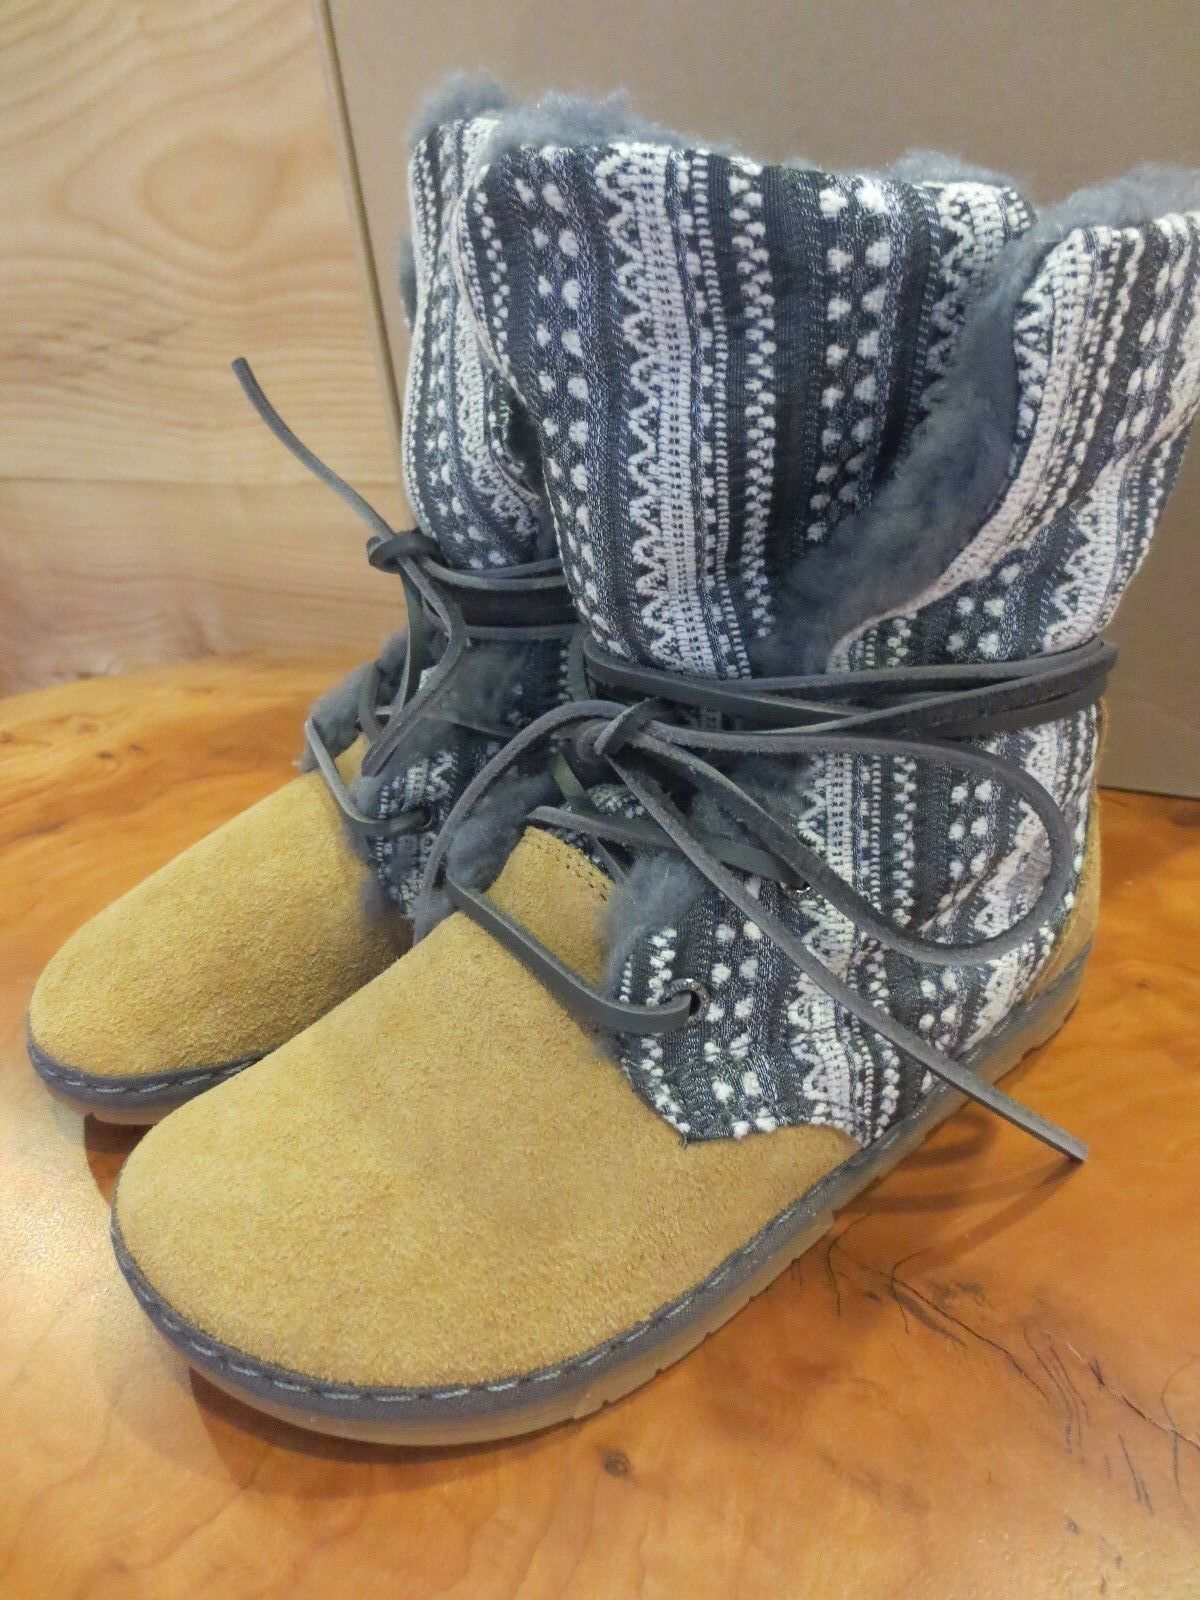 NIB Unisex Otz Boho Hippie Suede Shearling Ankle Boots Shoes